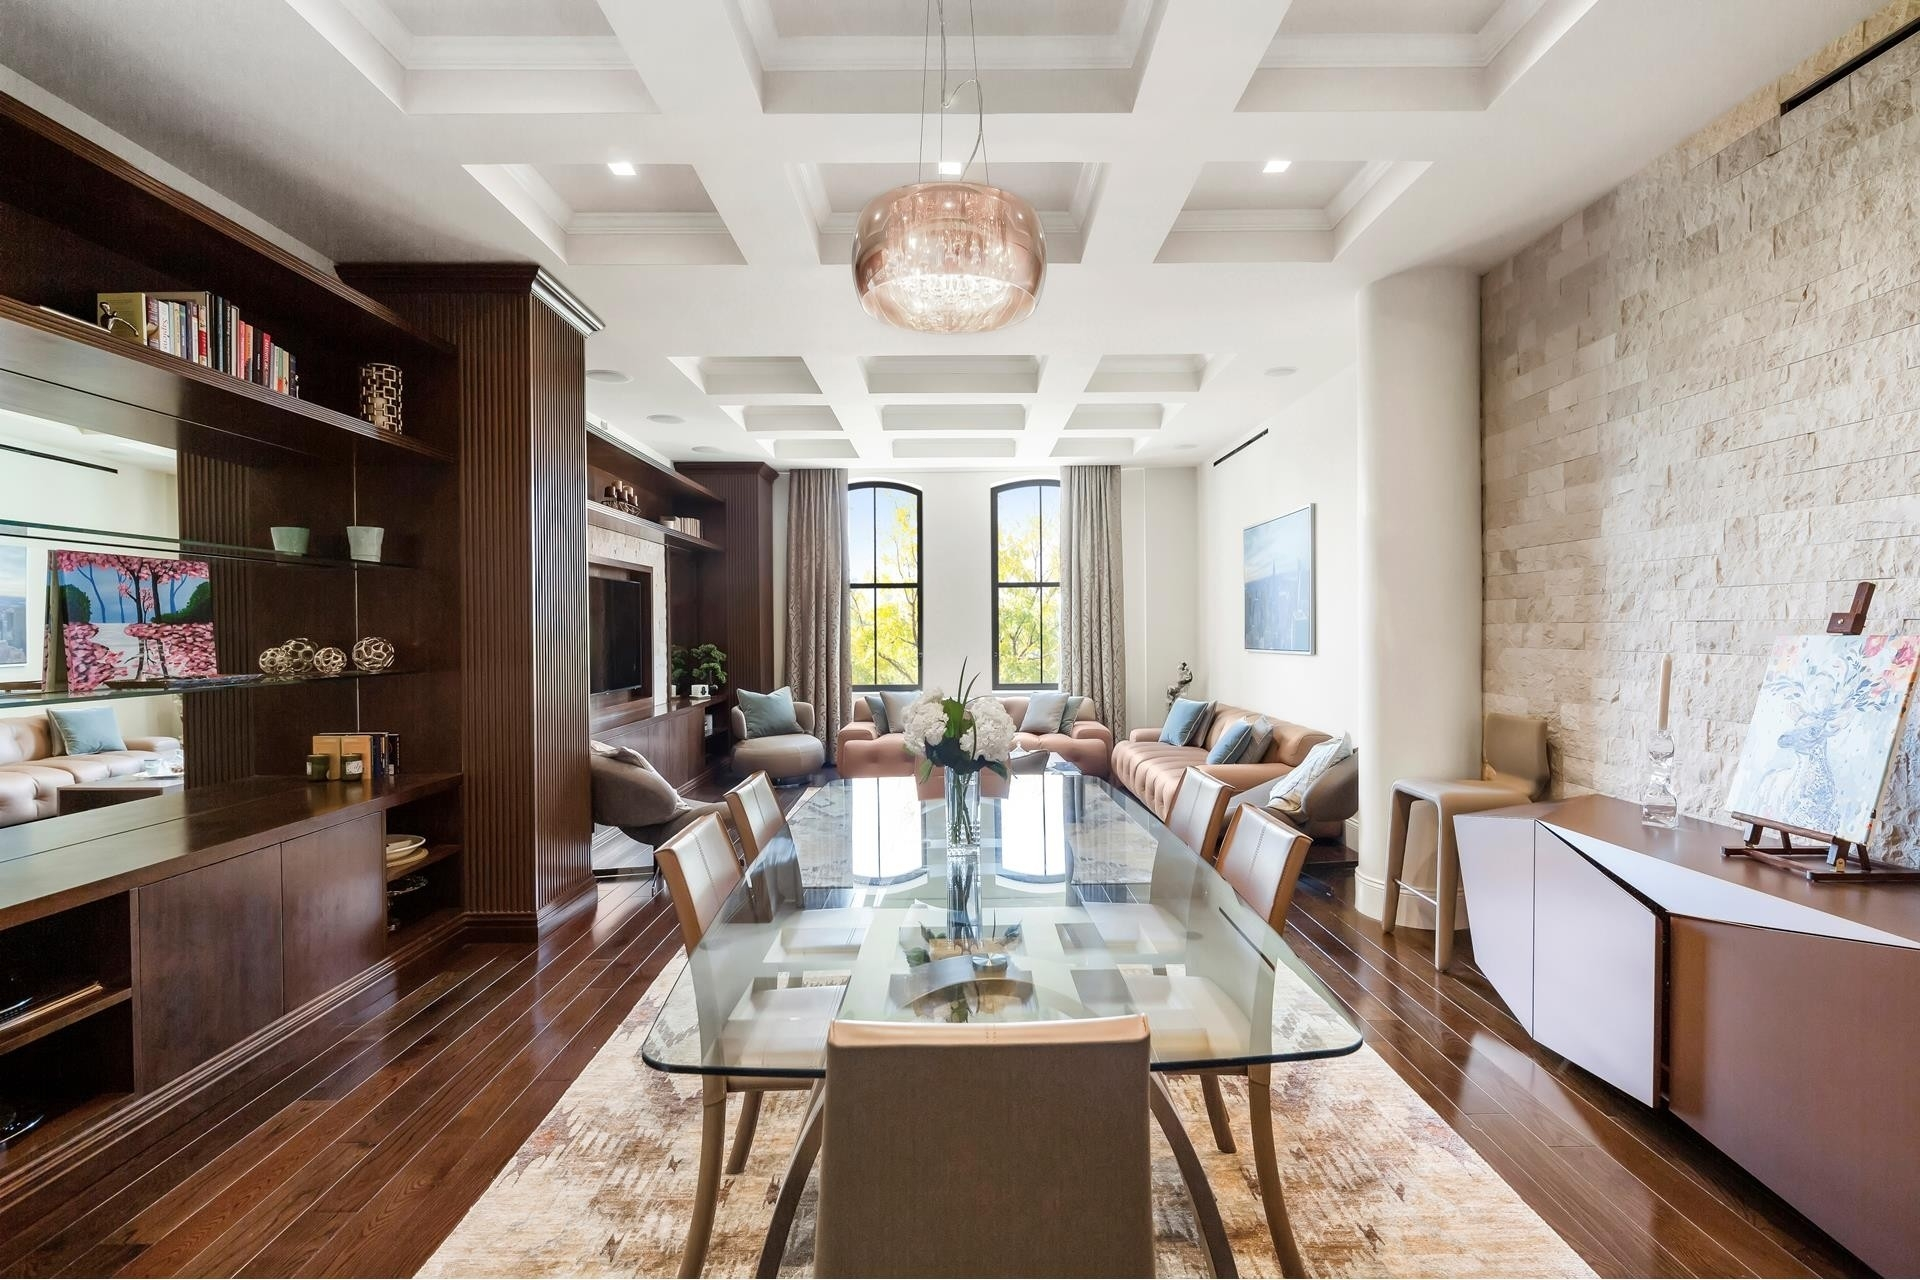 Condominium for Sale at 250 West St, 2C TriBeCa, New York, NY 10013